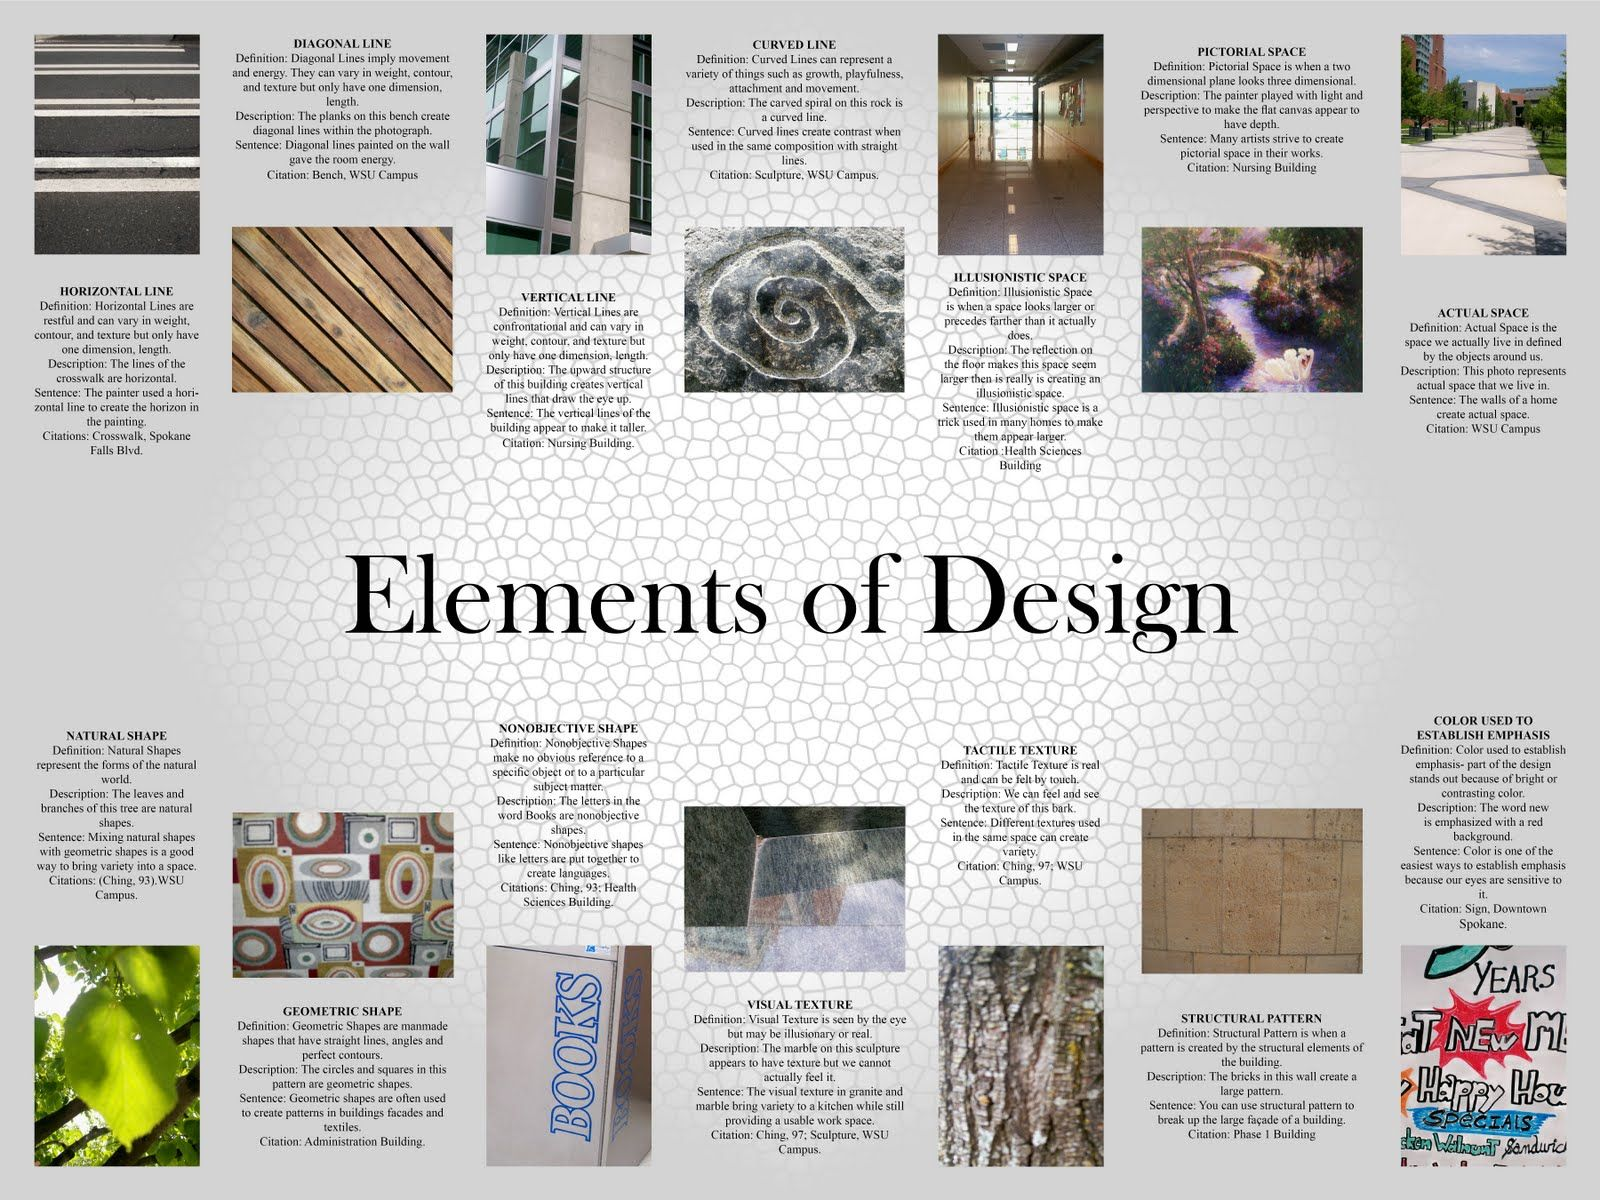 Shannon Stewart Elements And Principles Of Design Interior Design Principles Principles Of Design Elements And Principles